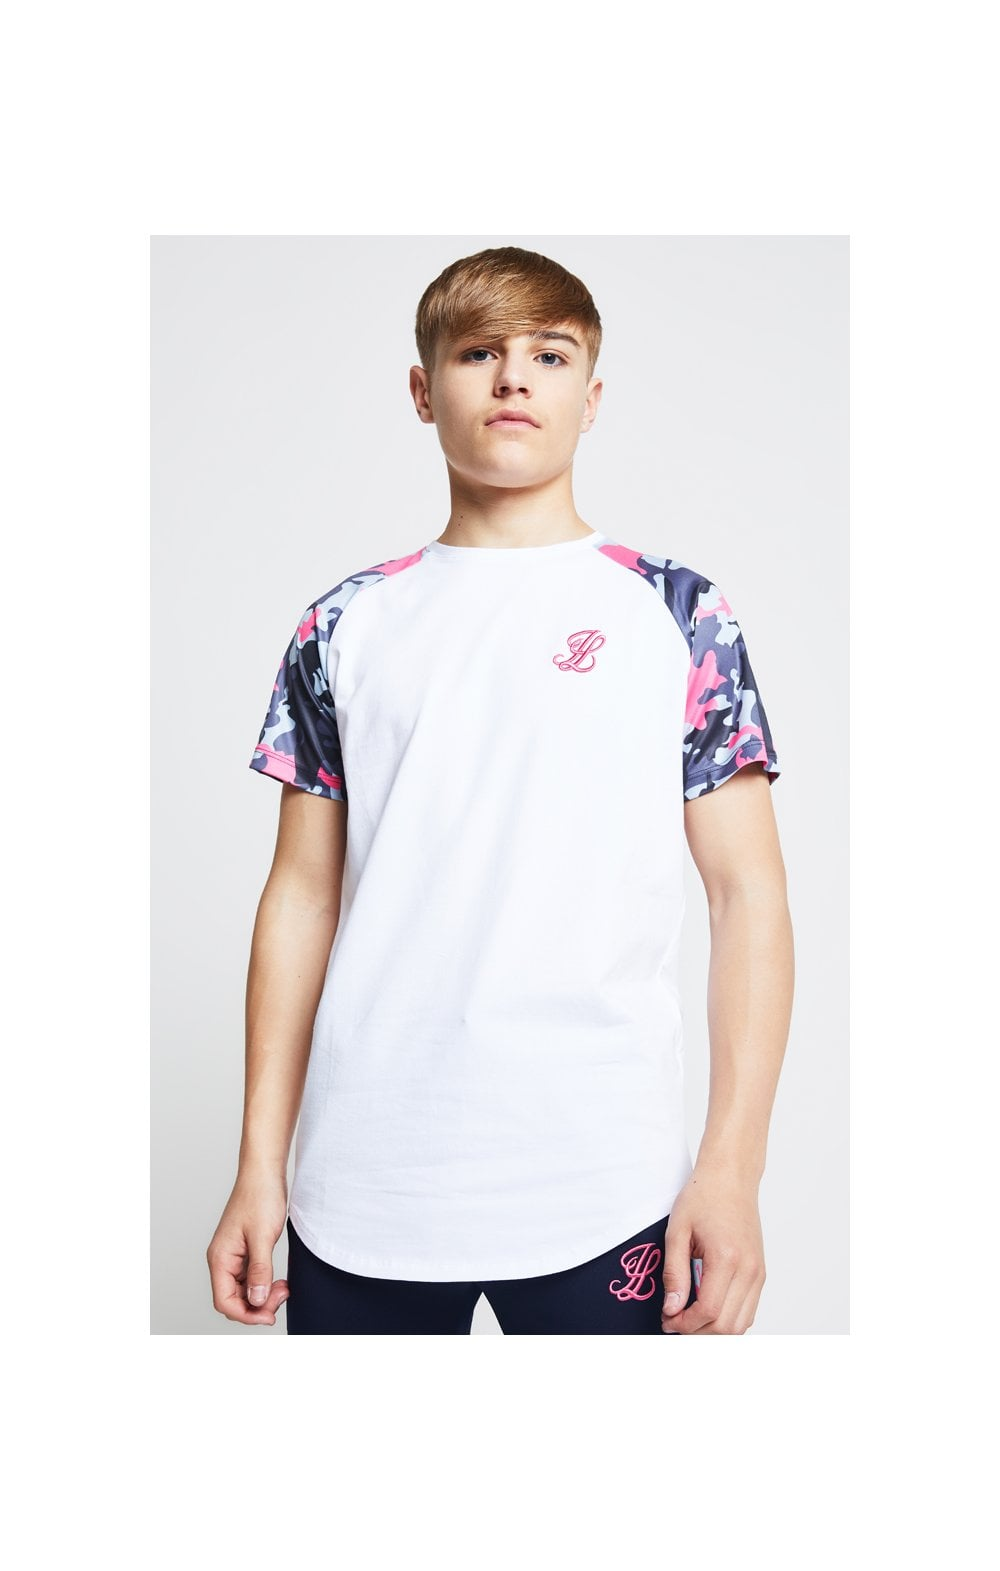 Load image into Gallery viewer, Illusive London Raglan Tee – White & Neon Pink Camo (1)